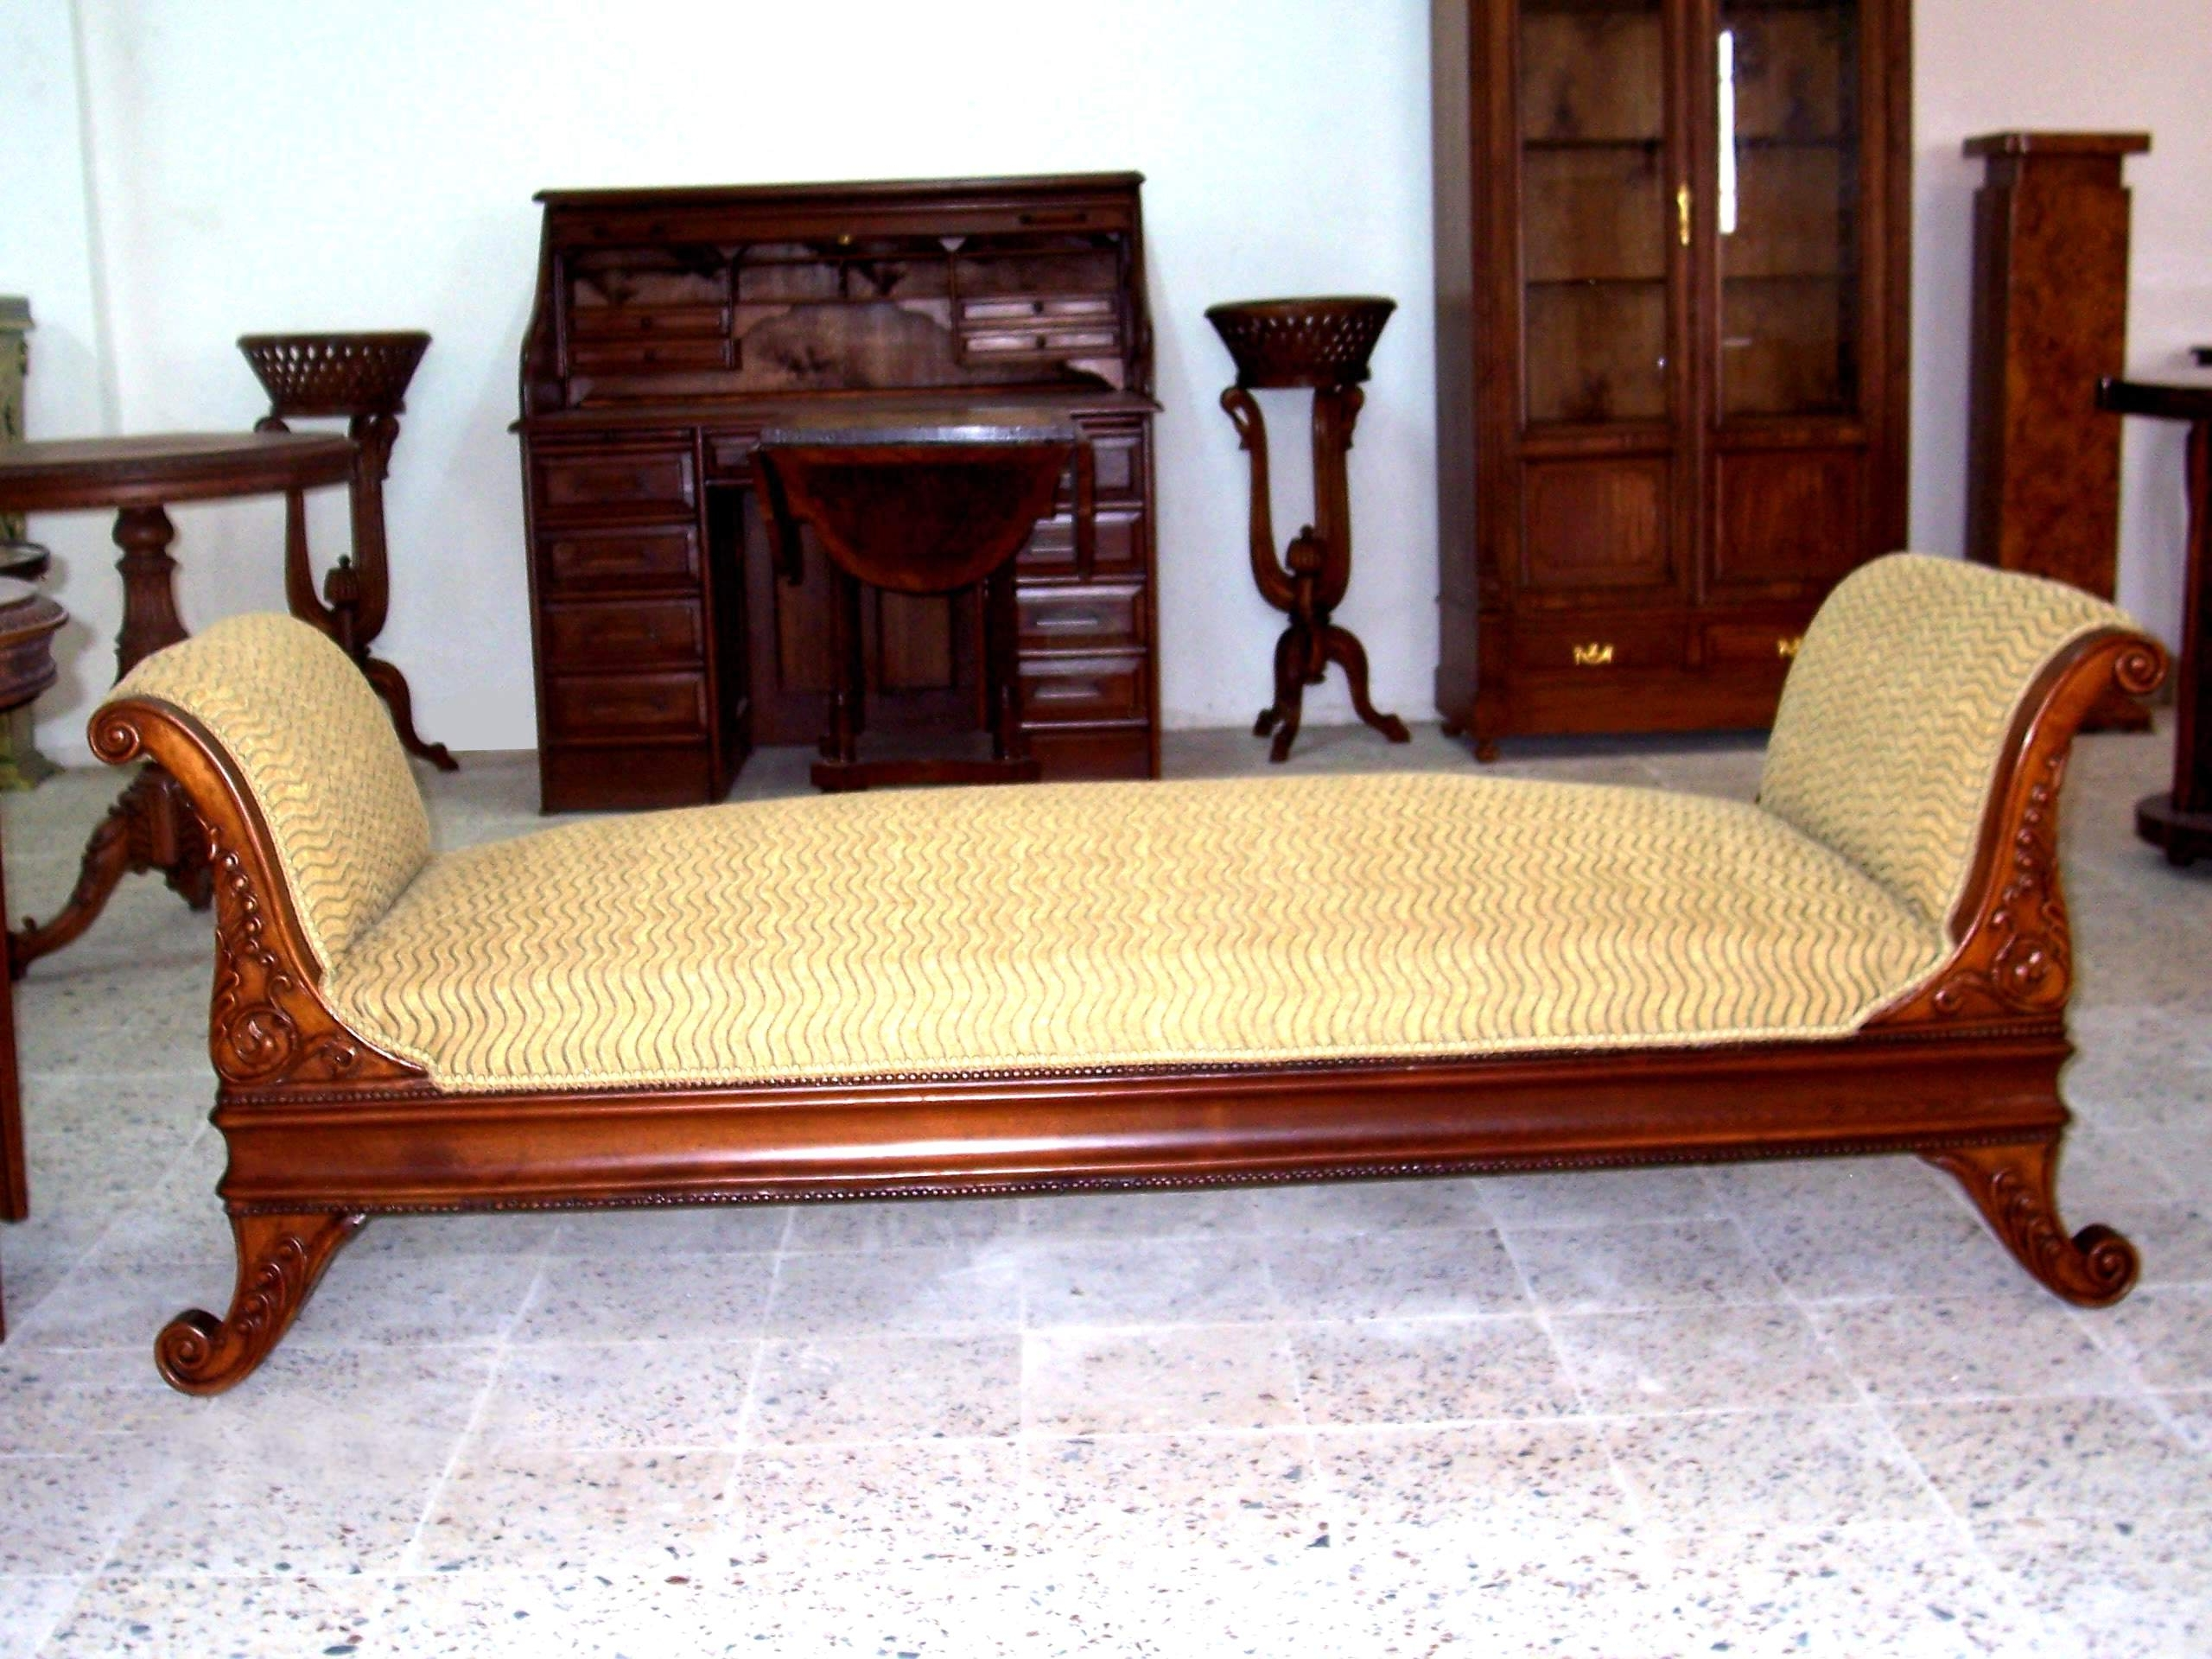 Simple Victorian Chaise Lounge – Home Design And Decor For Popular Victorian Chaise Lounge Chairs (View 2 of 15)